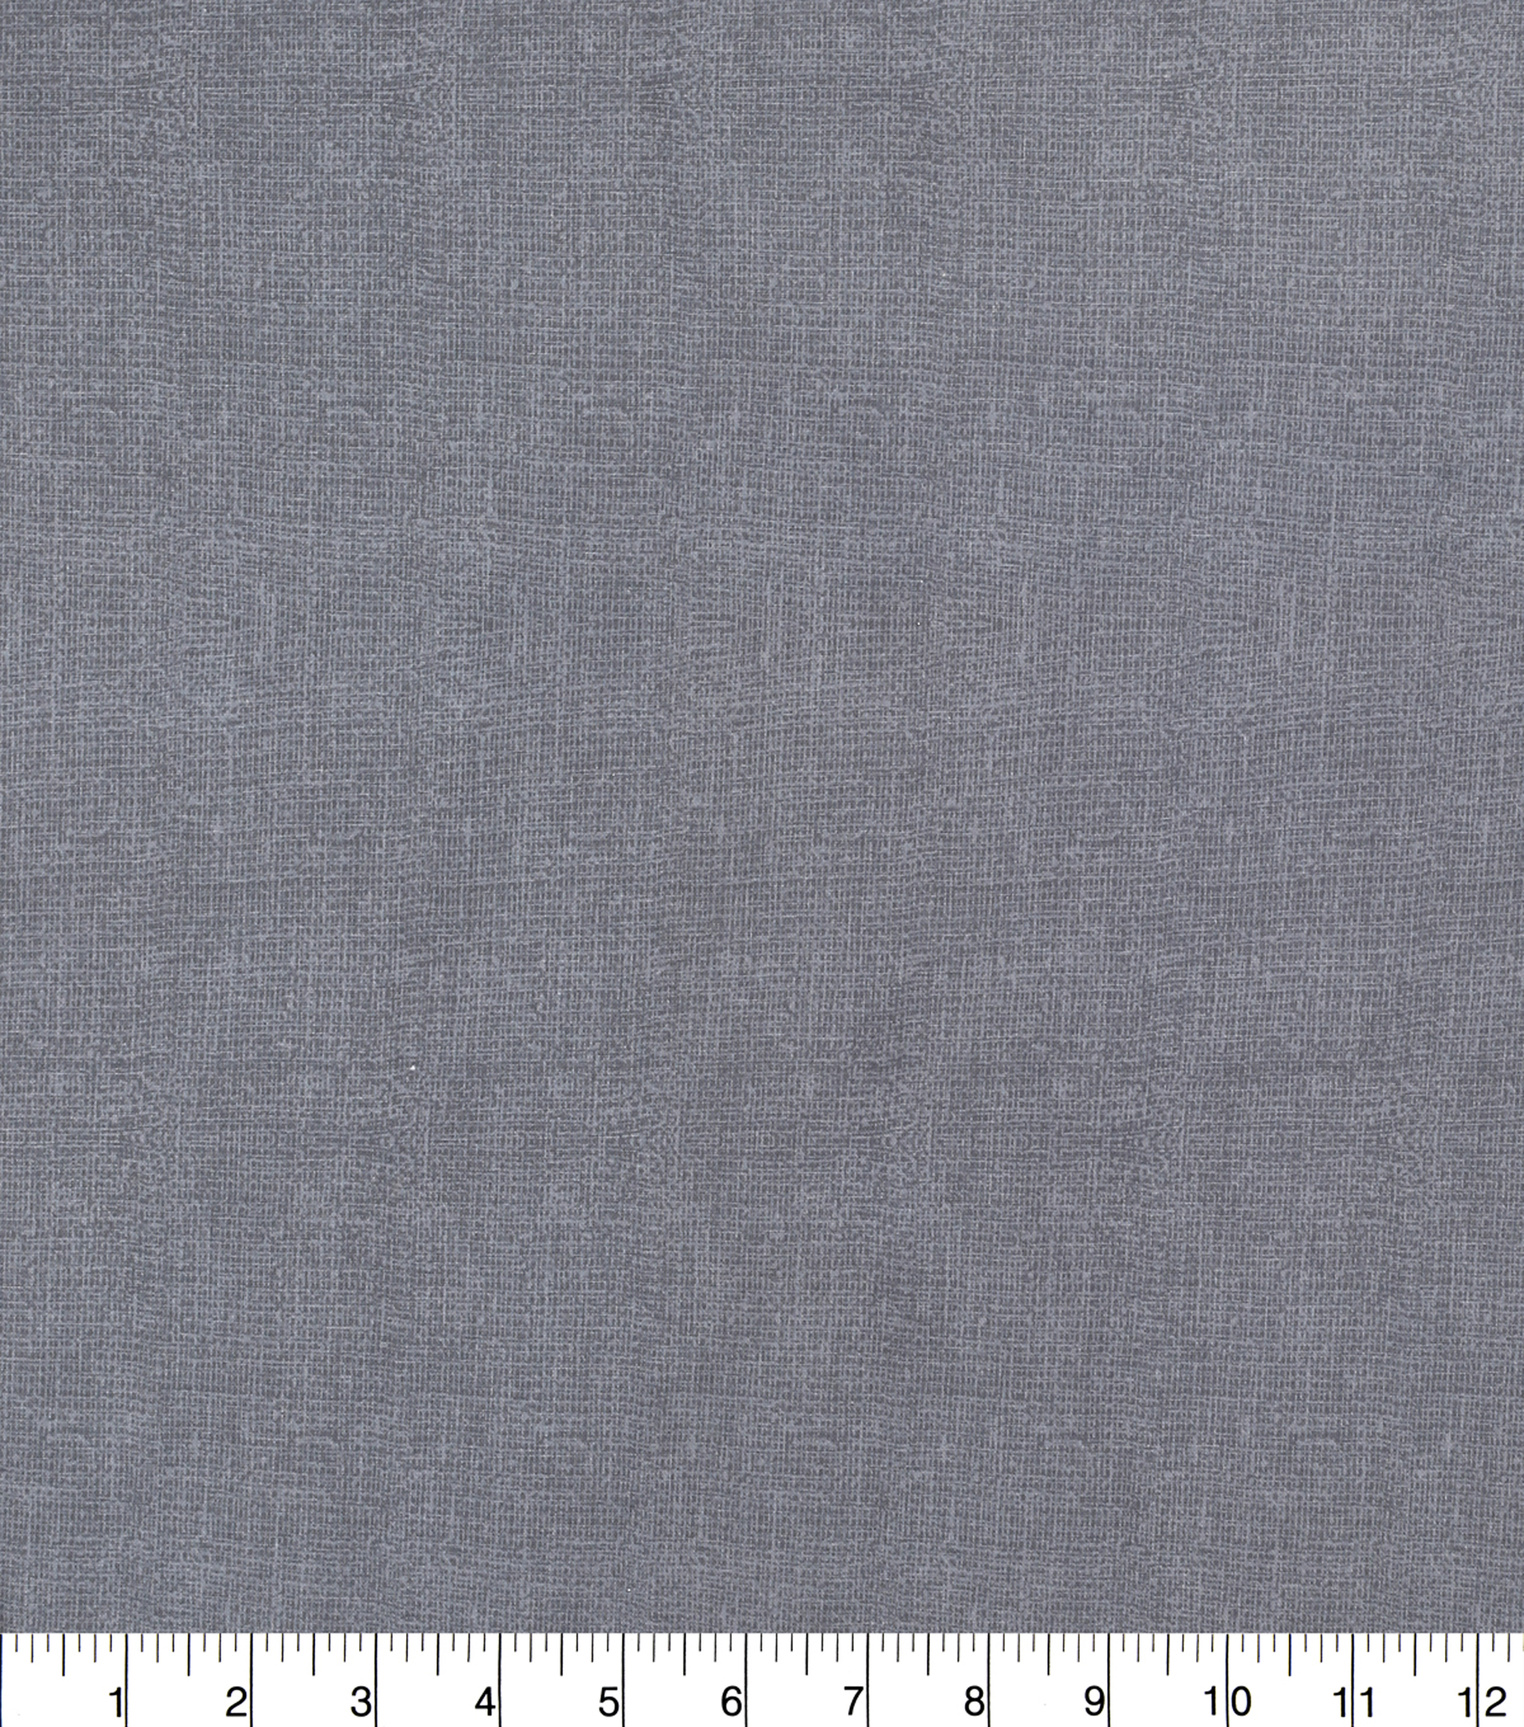 Keepsake Calico Cotton Fabric 43''-Gray | JOANN